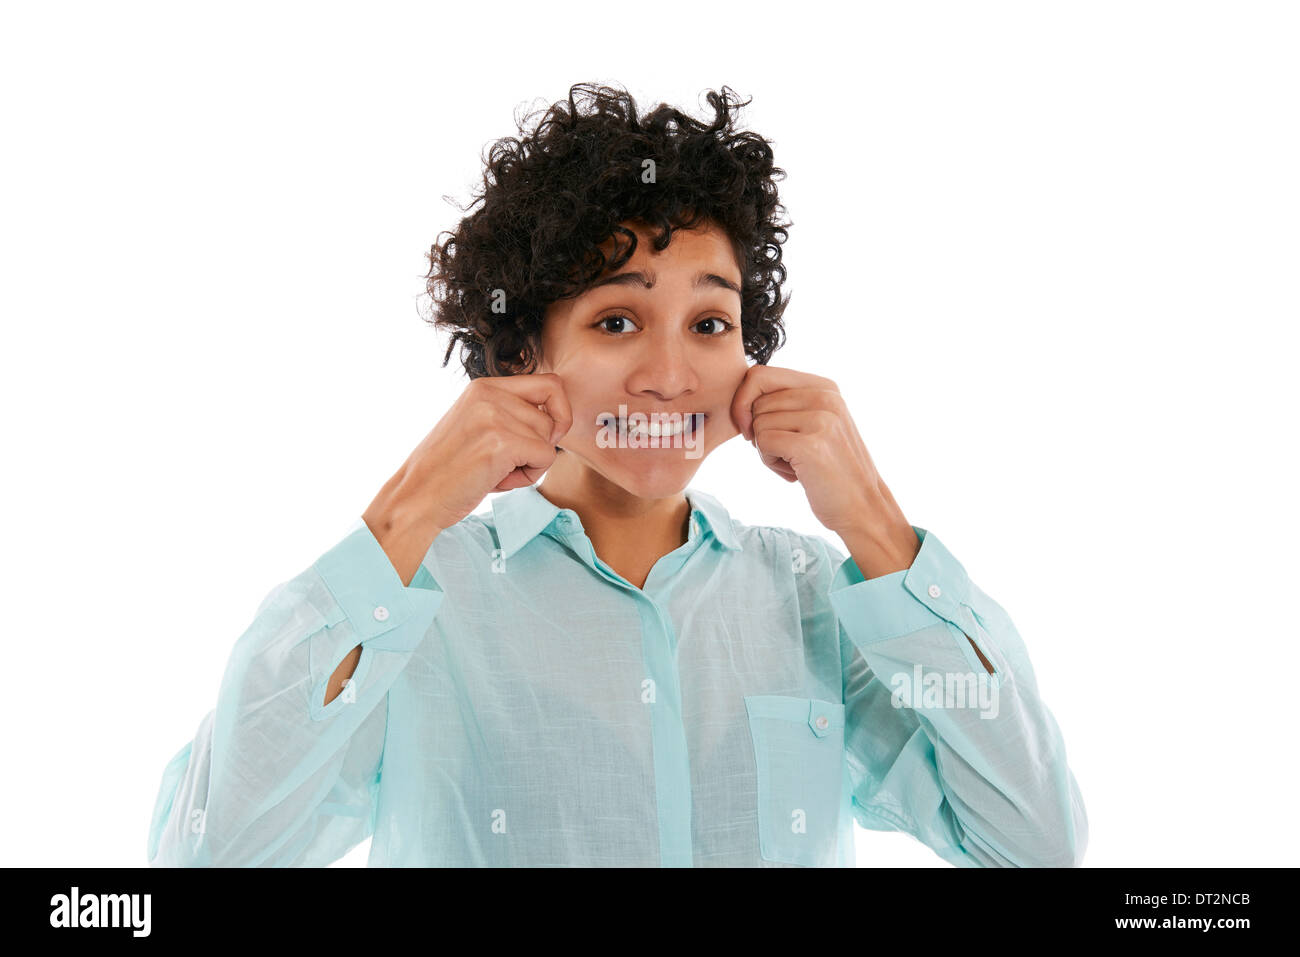 hispanic woman doing facial expression, giving herself a pinch on cheek to smile while looking at camera on white background - Stock Image